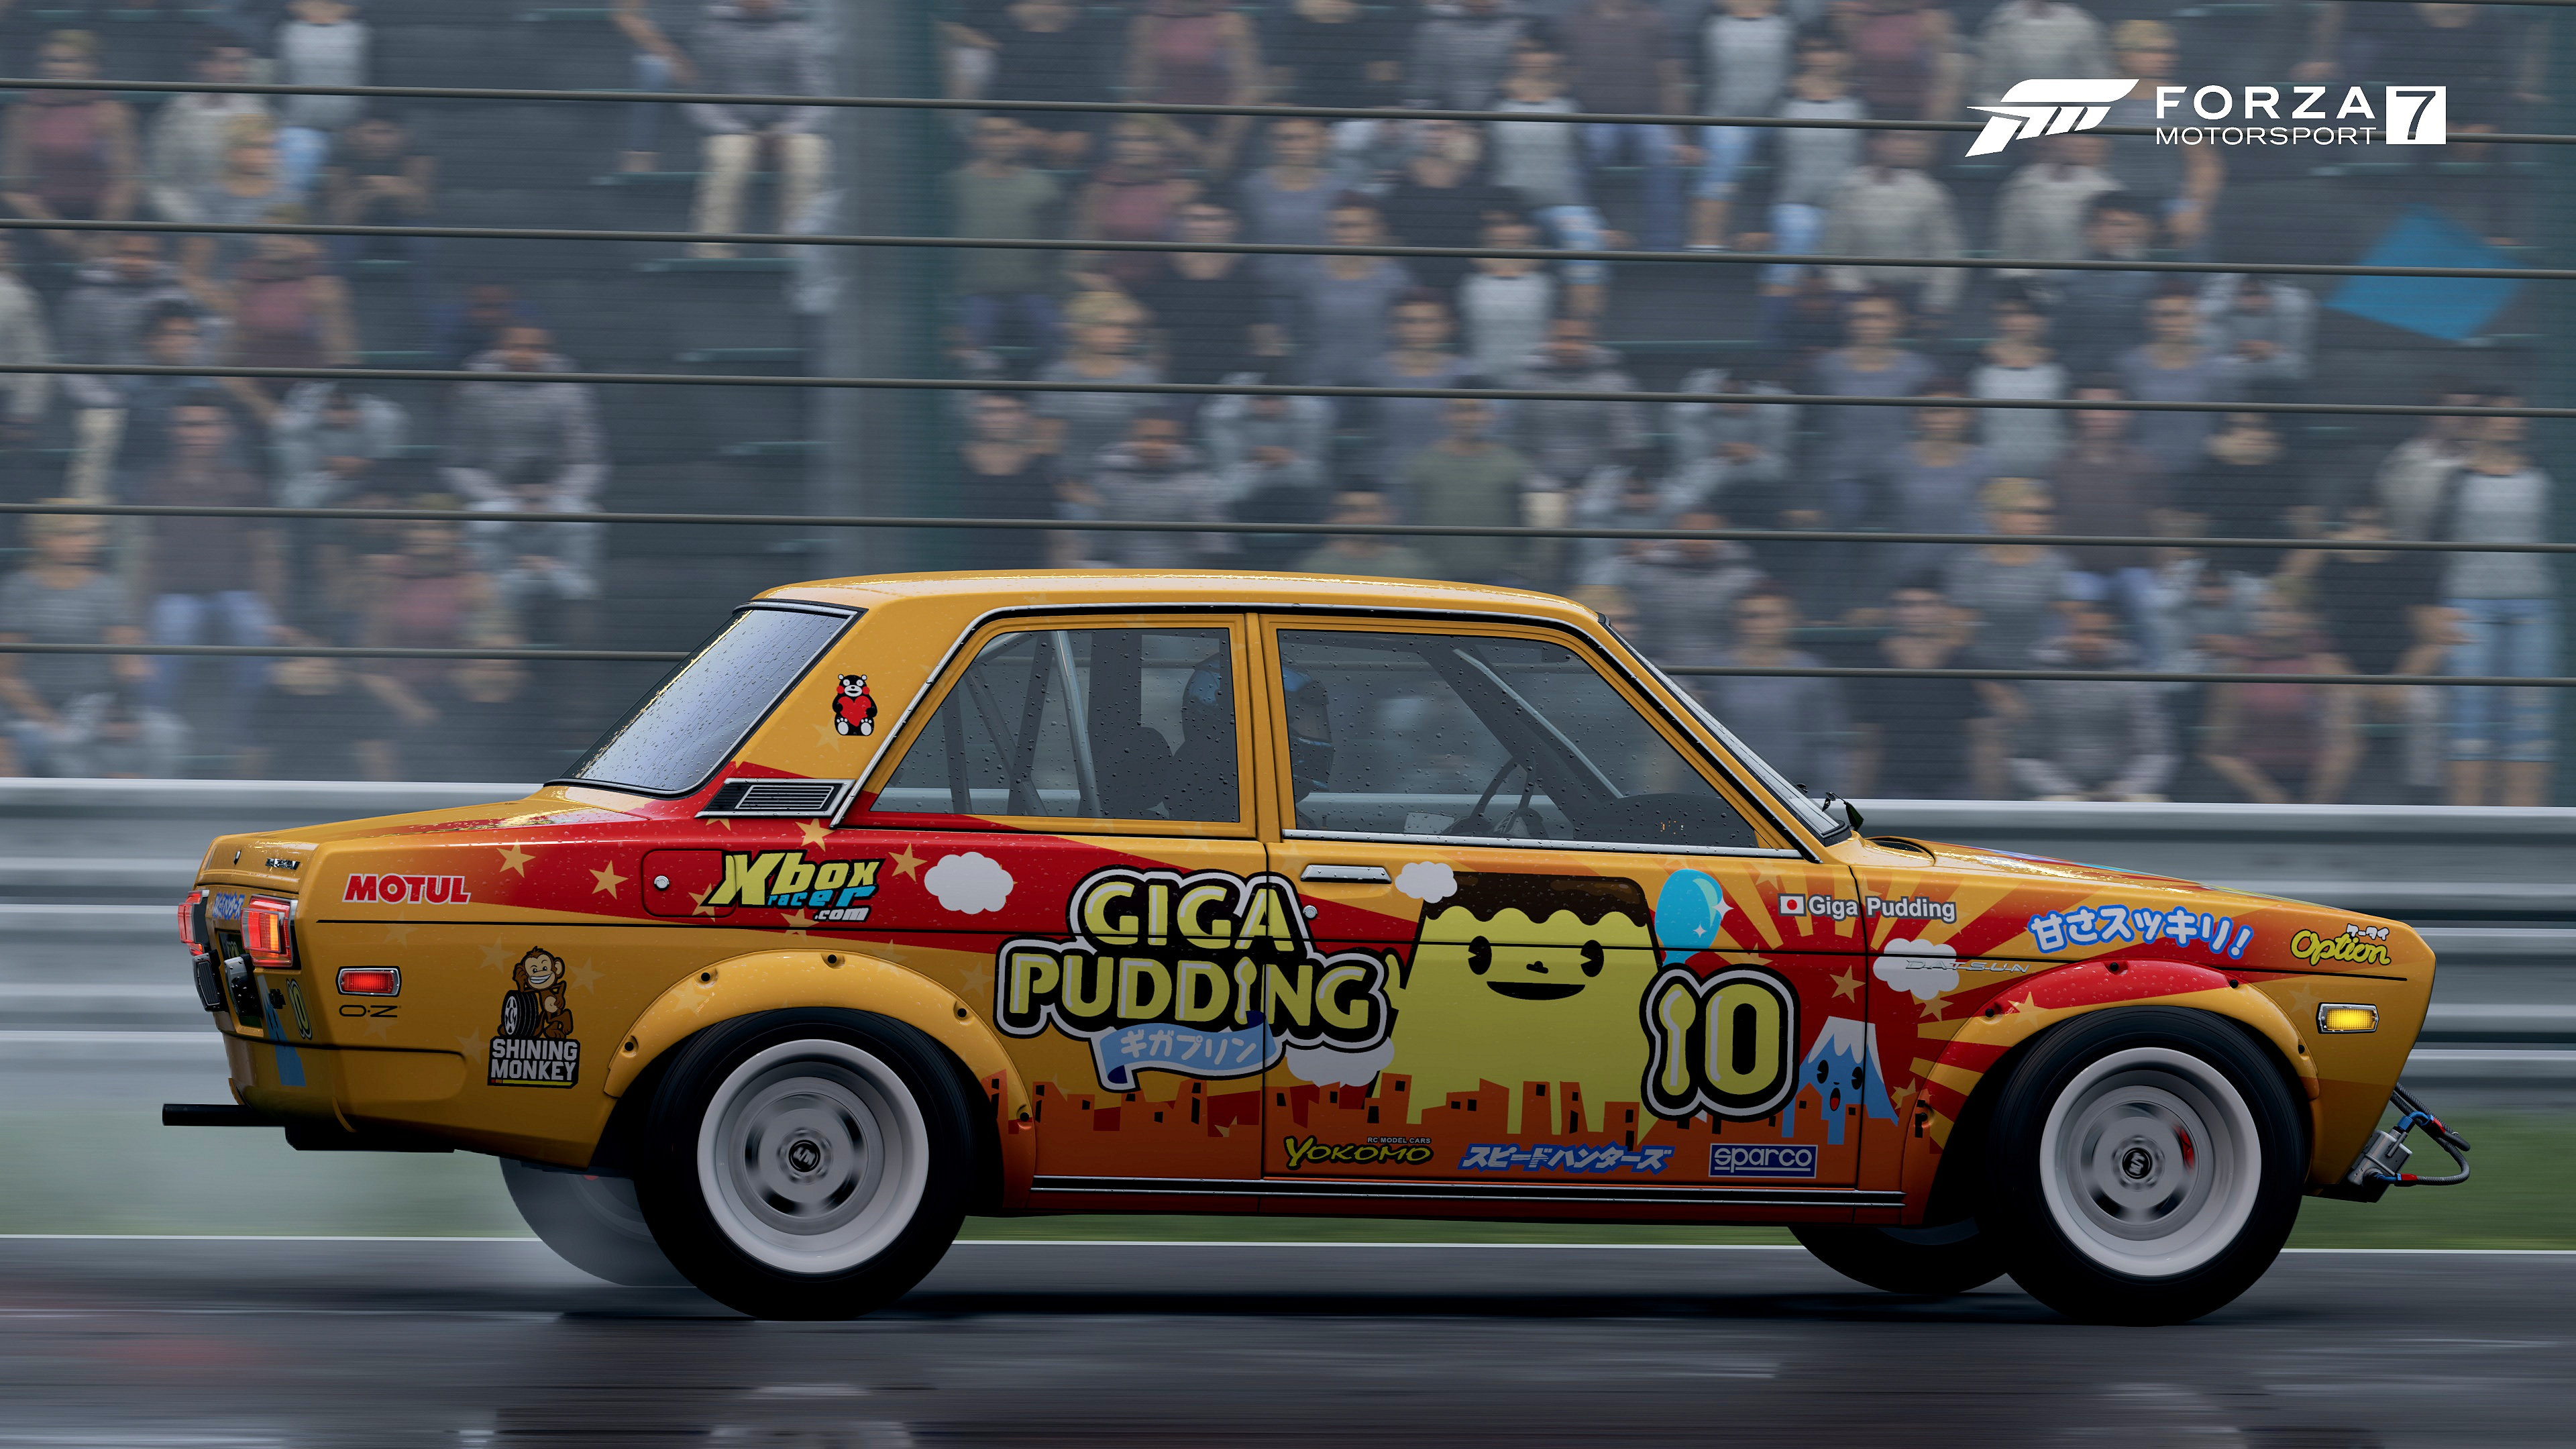 Forza Motorsport 7 Livery Contests - 11 - Community Events